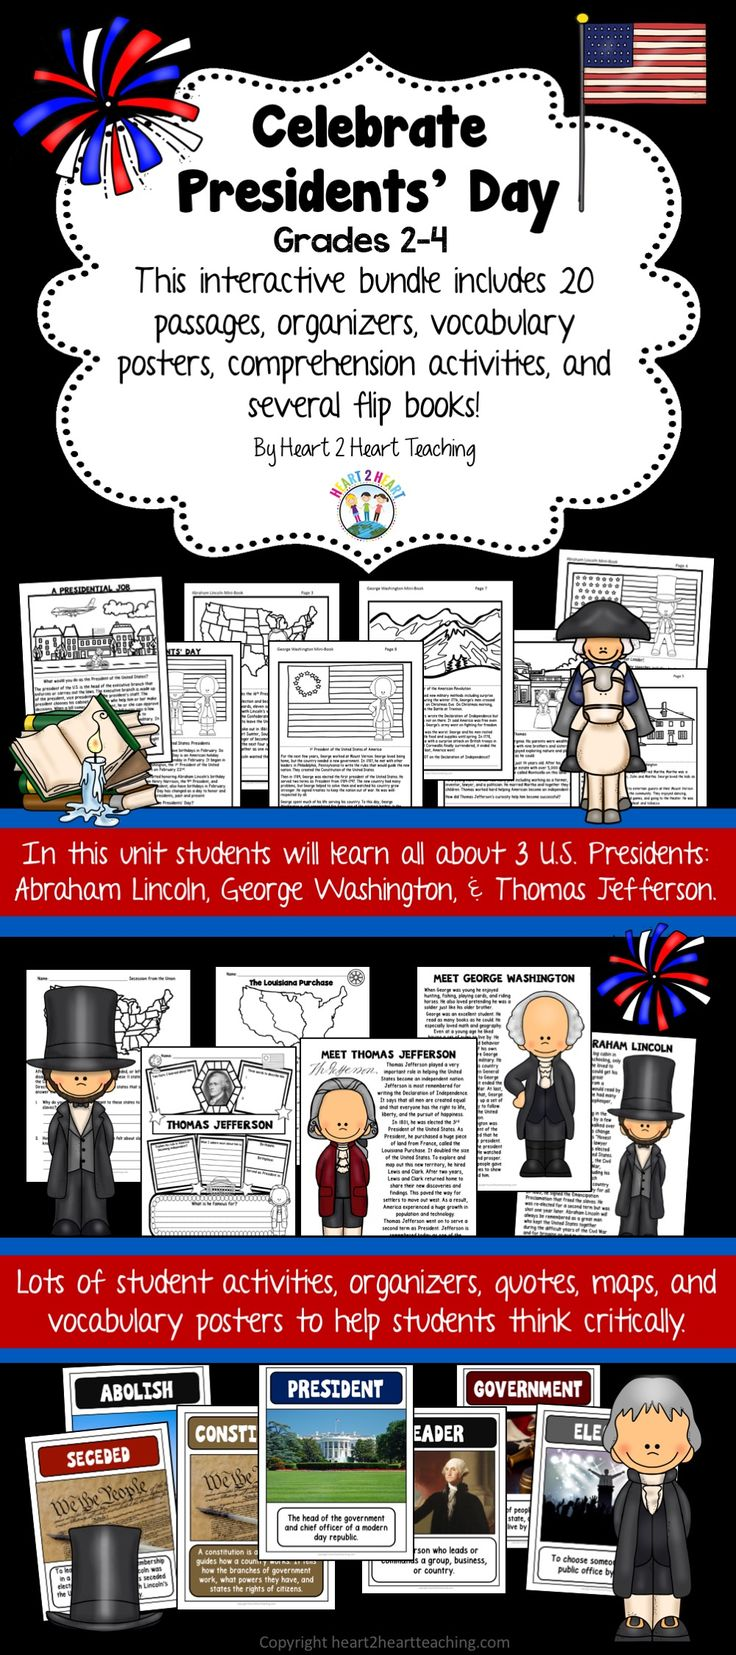 best ideas about thomas jefferson timeline presidents day bundle lincoln washington jefferson